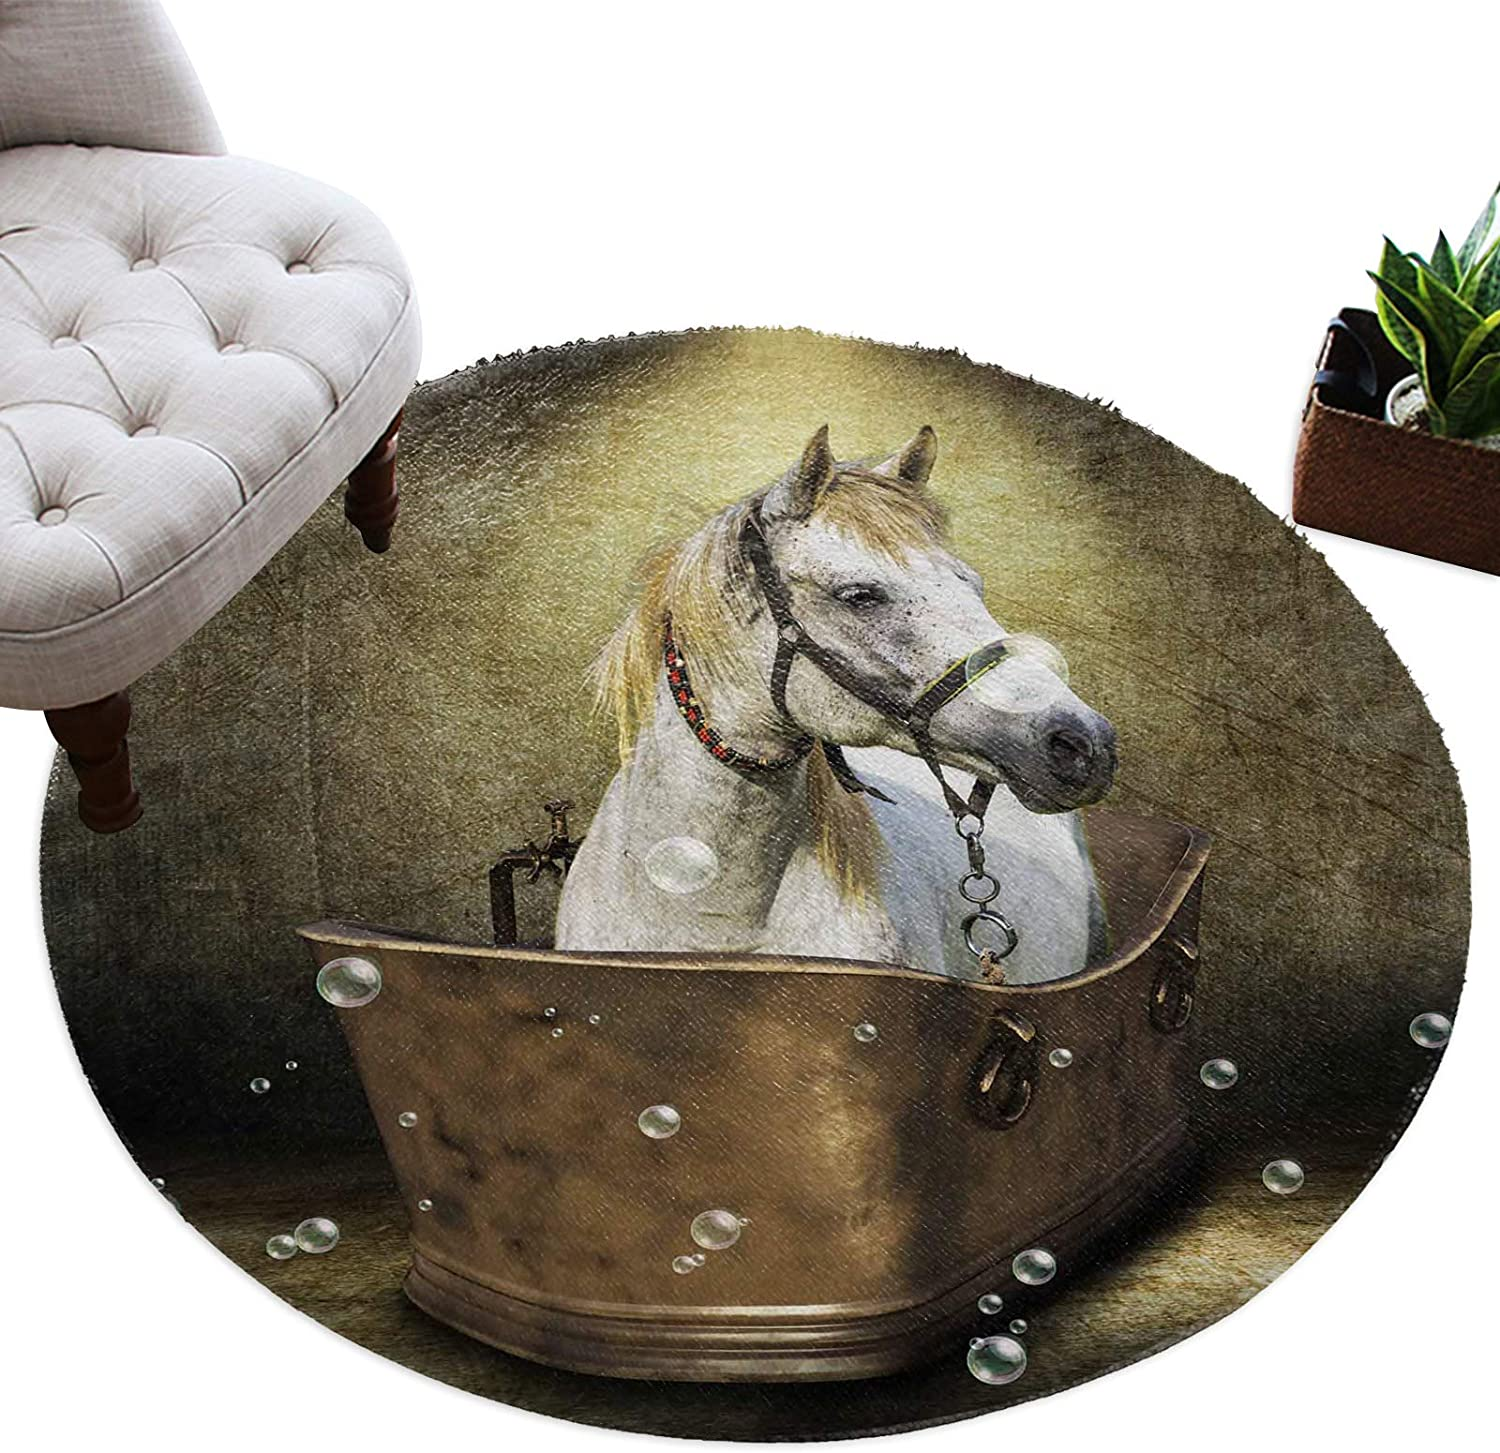 Plush Round Area Rug for Bedroom Max 45% OFF White Carpet Nursery Dorm Horse OFFicial